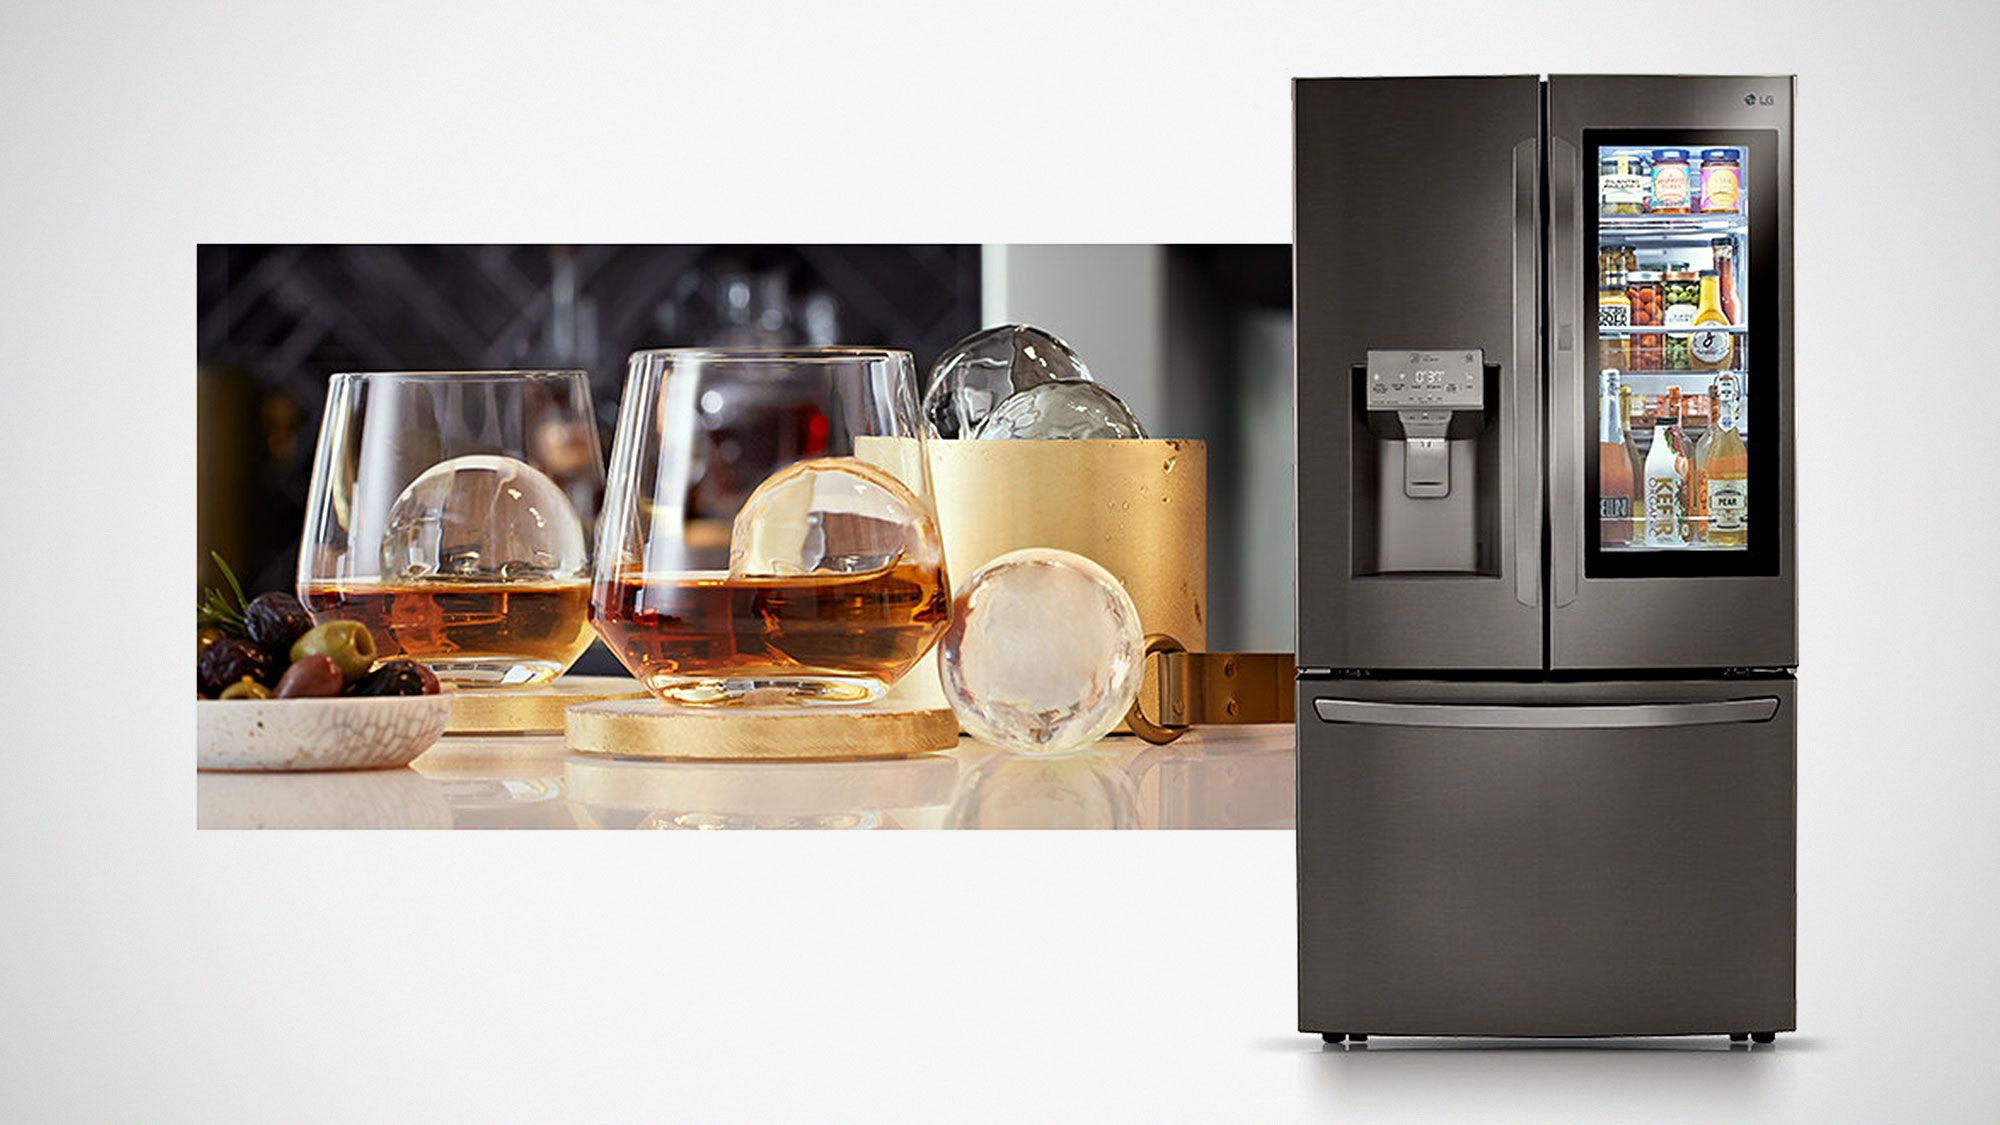 50+ Lg instaview with craft ice canada ideas in 2021